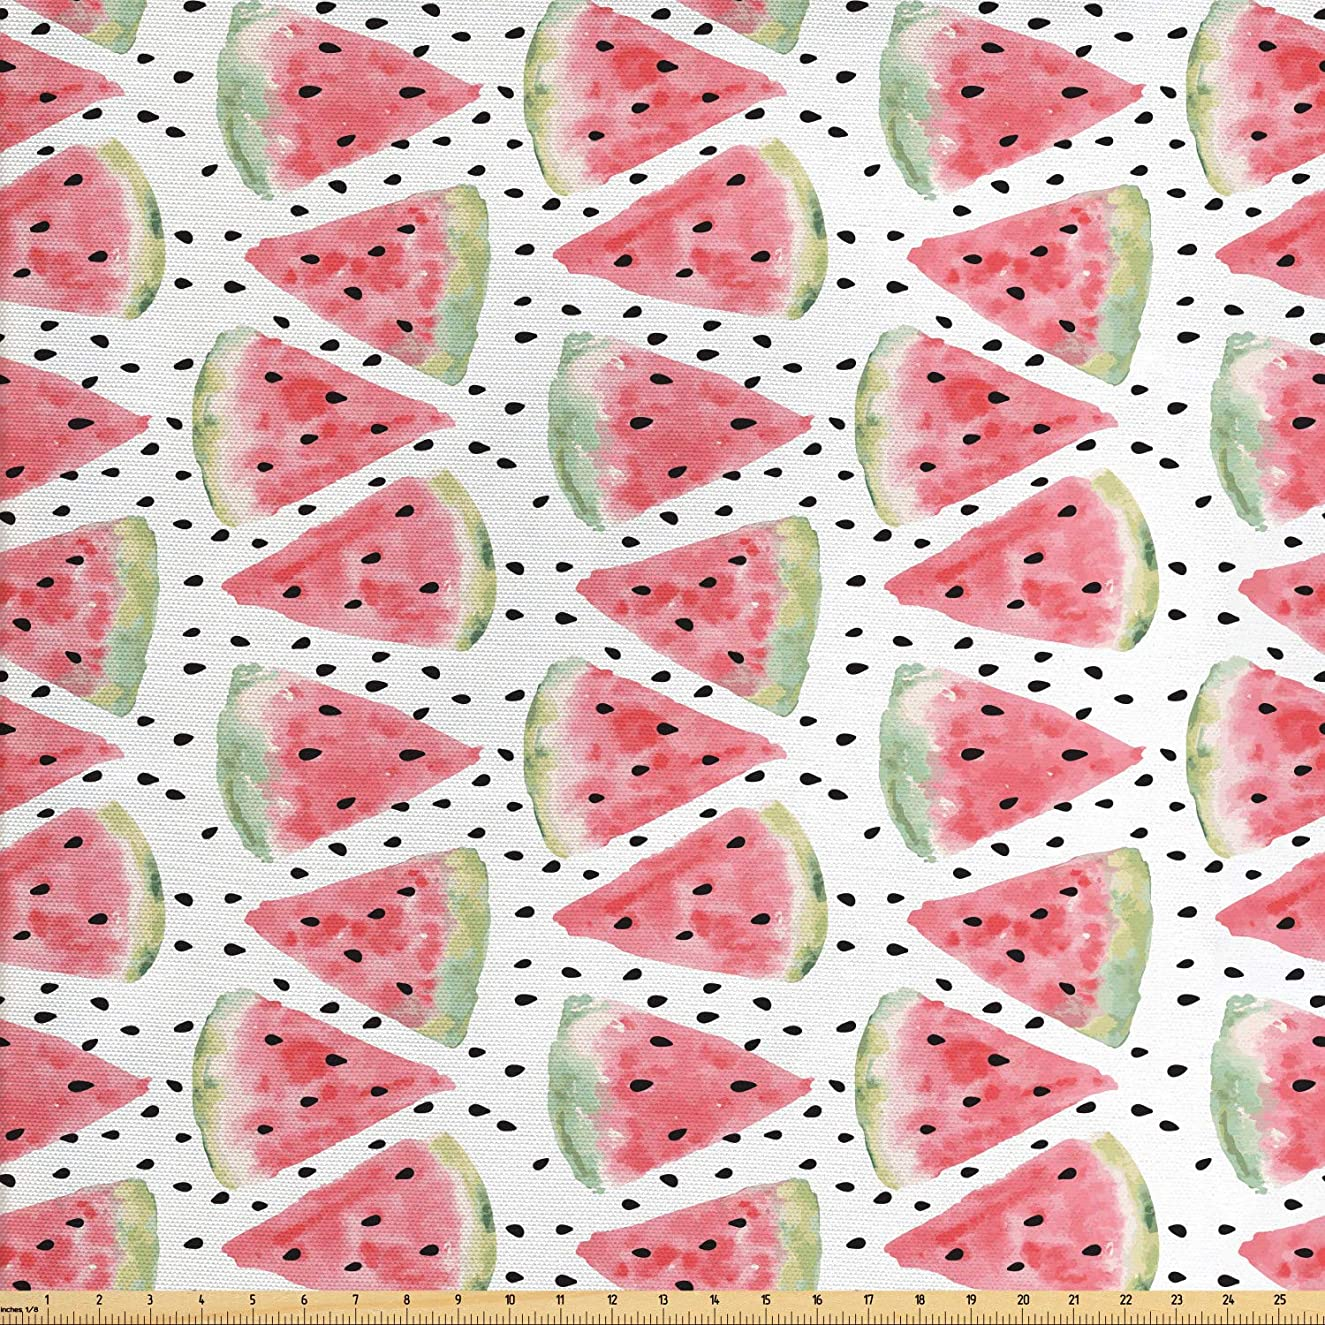 Ambesonne Watercolor Fabric by The Yard, Pattern of Juicy Pieces Watermelon with Seed Tropical Summer, Decorative Fabric for Upholstery and Home Accents, 1 Yard, Coral Pale Green Black